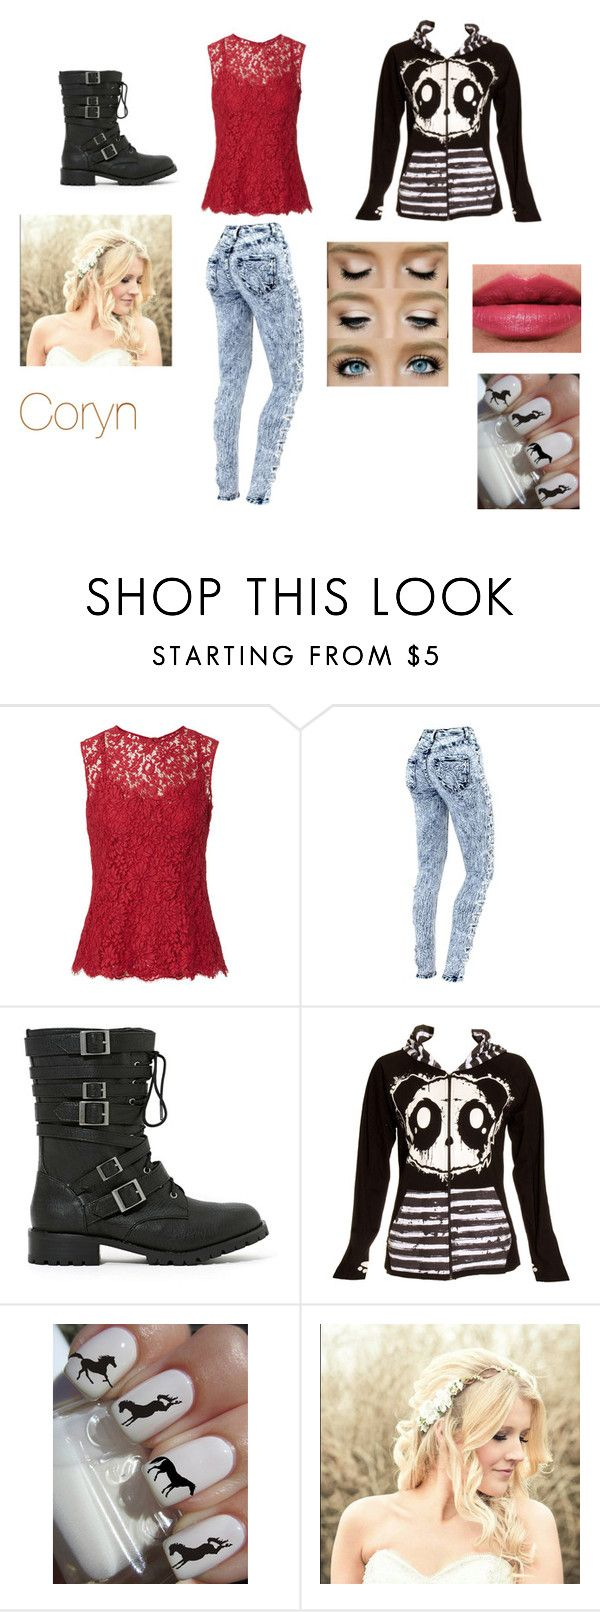 """coryn"" by frankie-lynn ❤ liked on Polyvore featuring beauty, Shoe Cult, Poizen Industries and Tom Ford"